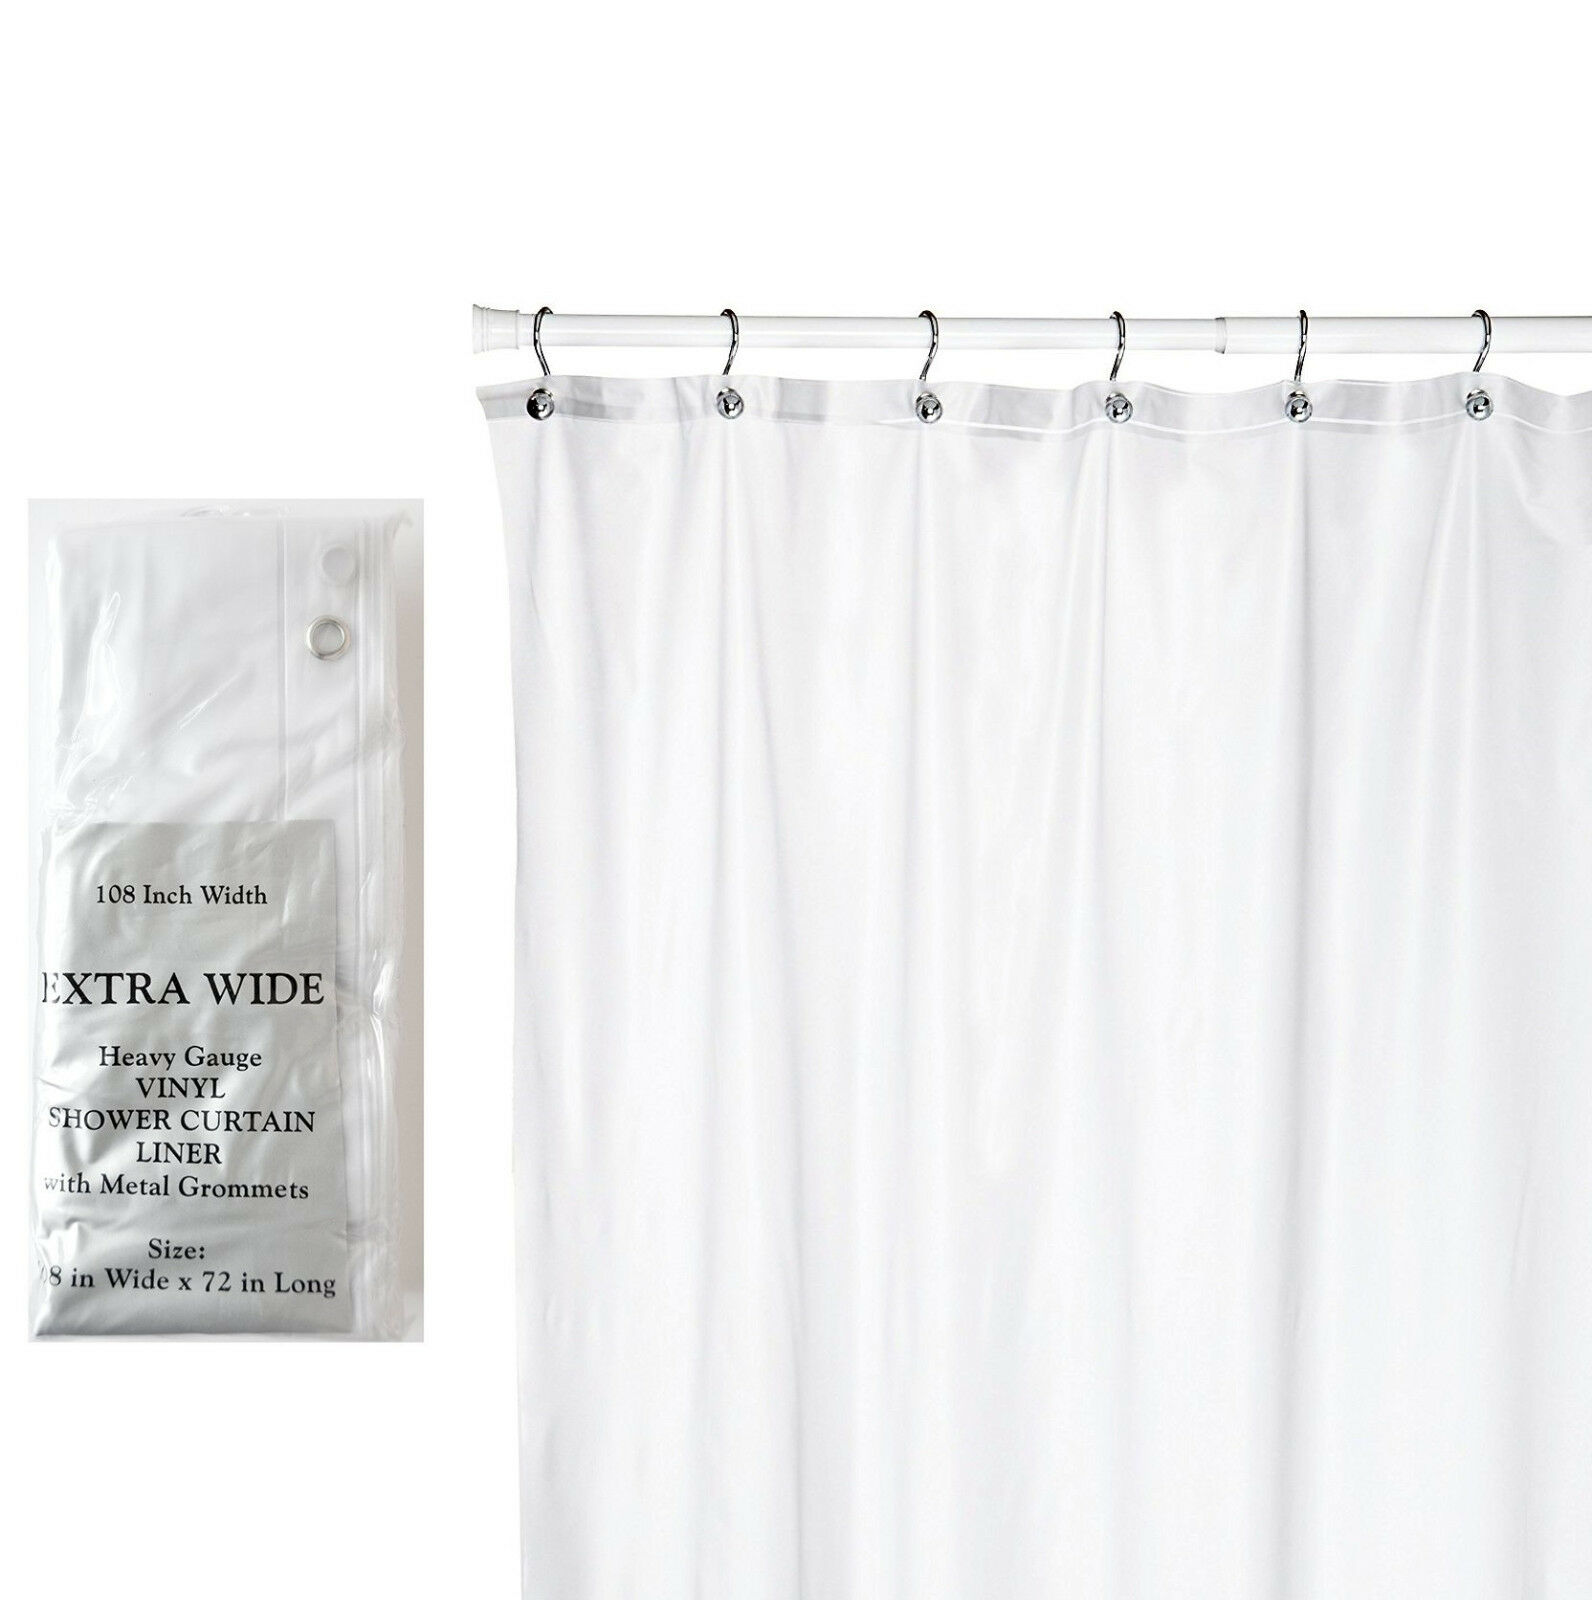 shower fabric curtains attachment fashions x new inc carnation home curtain of